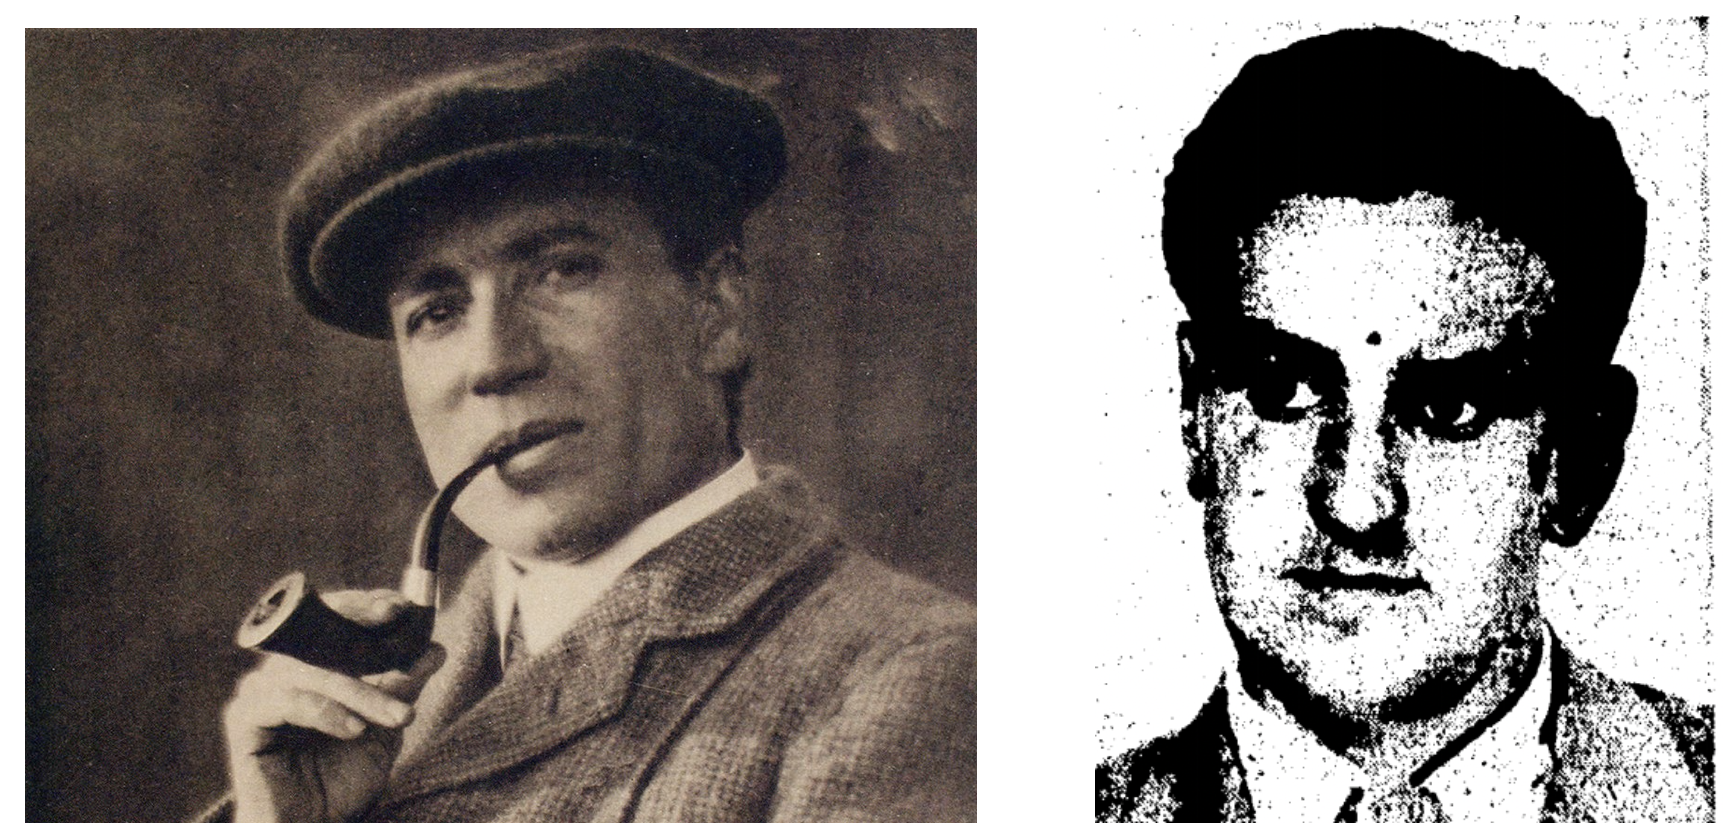 left: photo of man with cap and pipe; right: mug shot of short-haired man